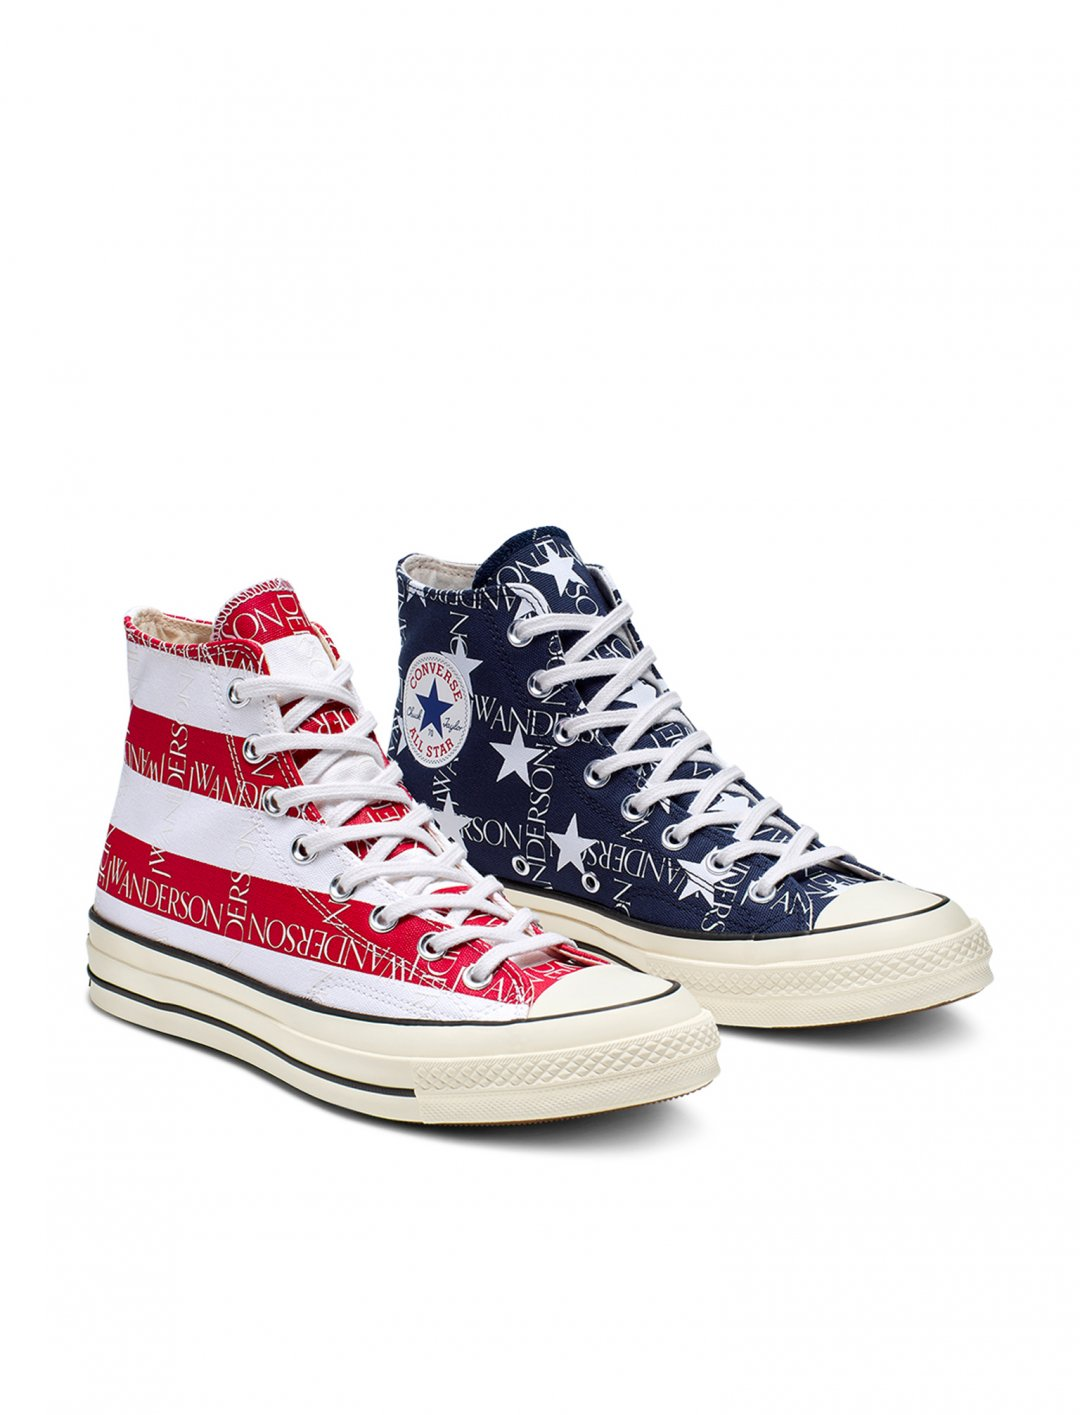 "Americana Chuck 70 Trainers {""id"":12,""product_section_id"":1,""name"":""Shoes"",""order"":12} Converse x JW Anderson"